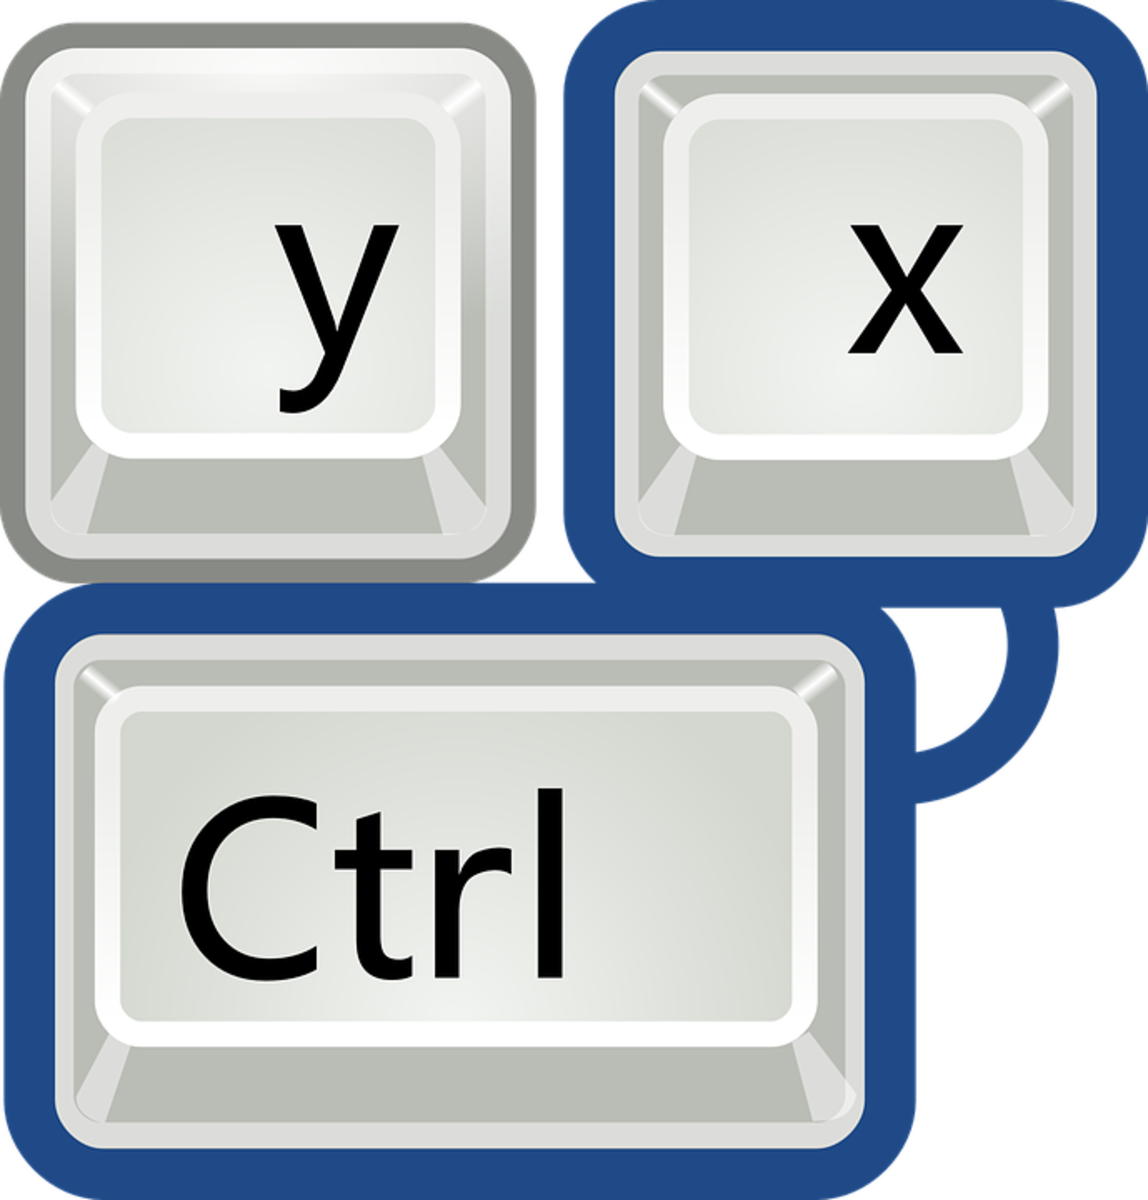 Using a keyboard shortcut is the fastest and easiest method to umerge cells in Microsoft Excel.